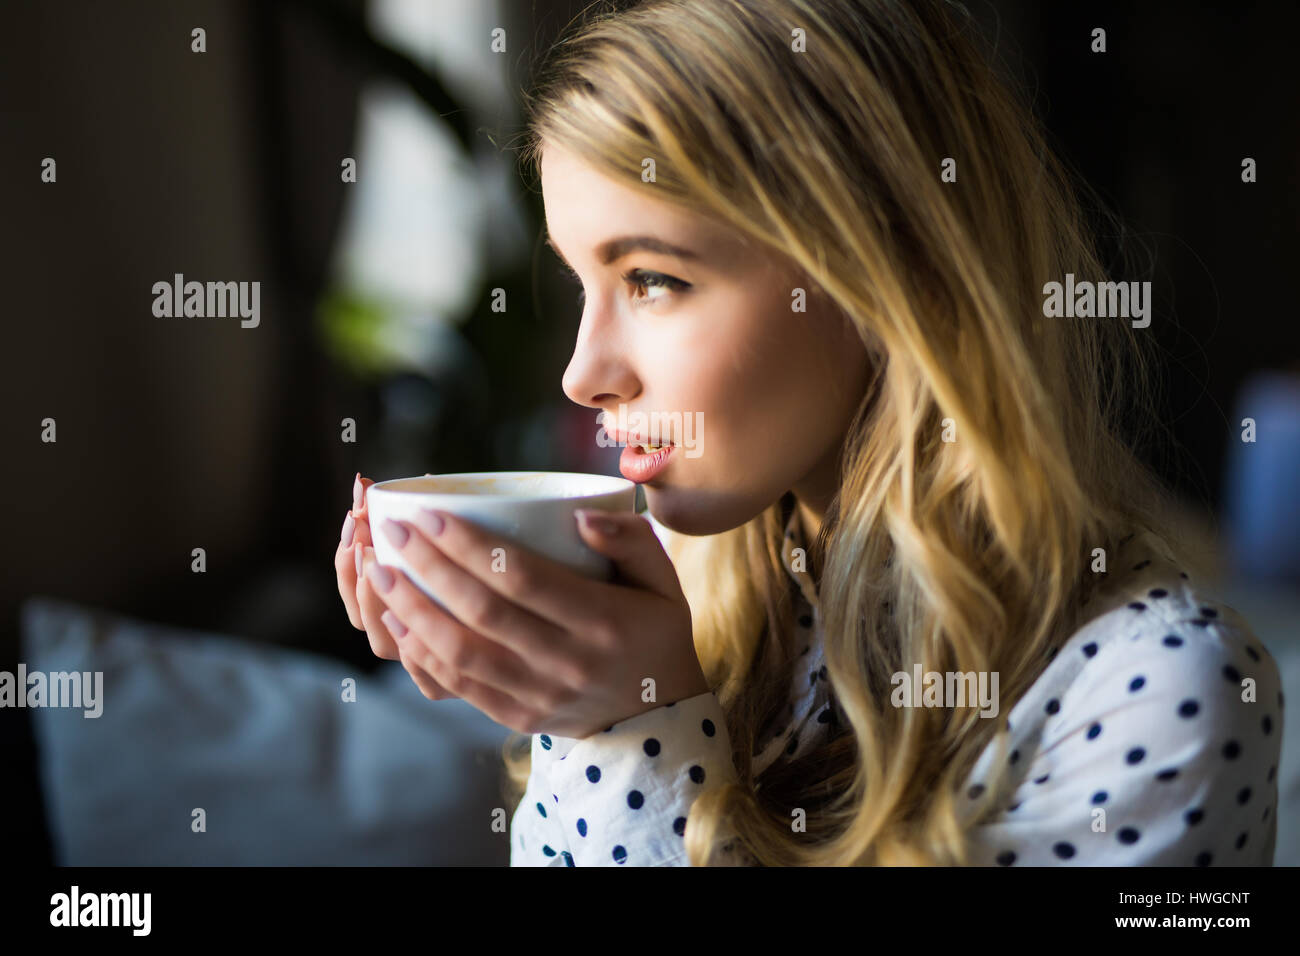 Portrait of young gorgeous female drinking tea and thoughtfully looking out of the coffee shop window while enjoying Stock Photo